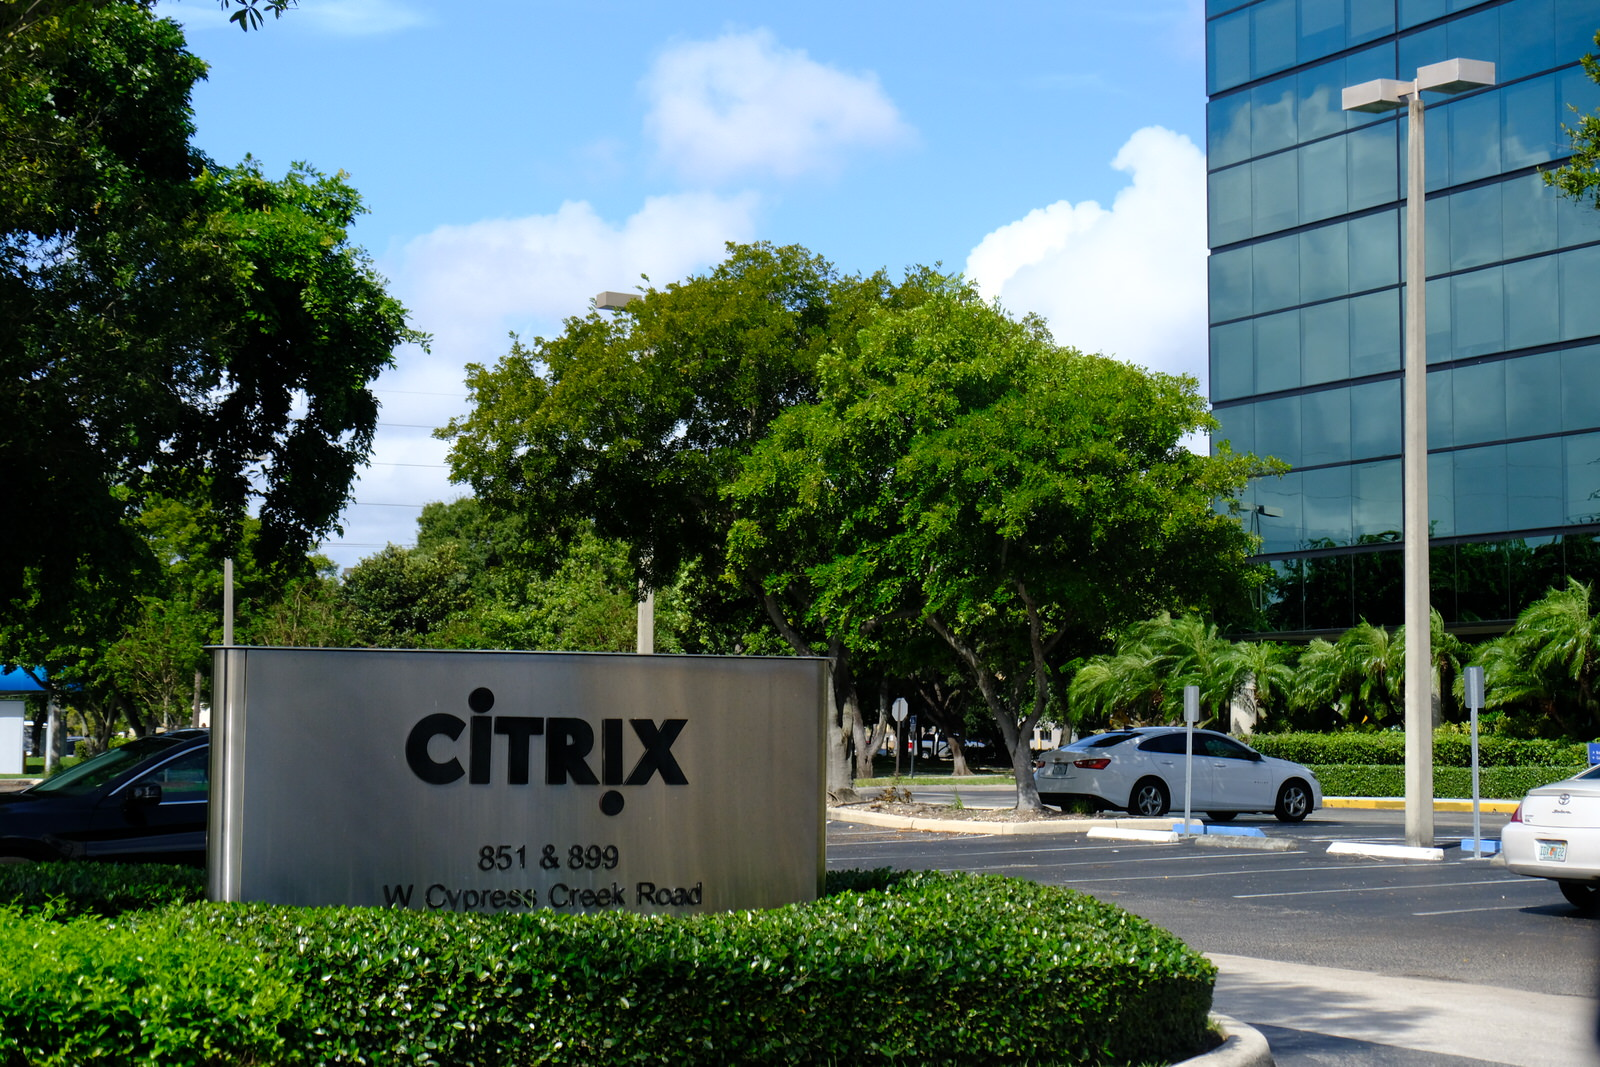 Entrance to Citrix System's corporate headquarters in Fort Lauderdale, Florida.